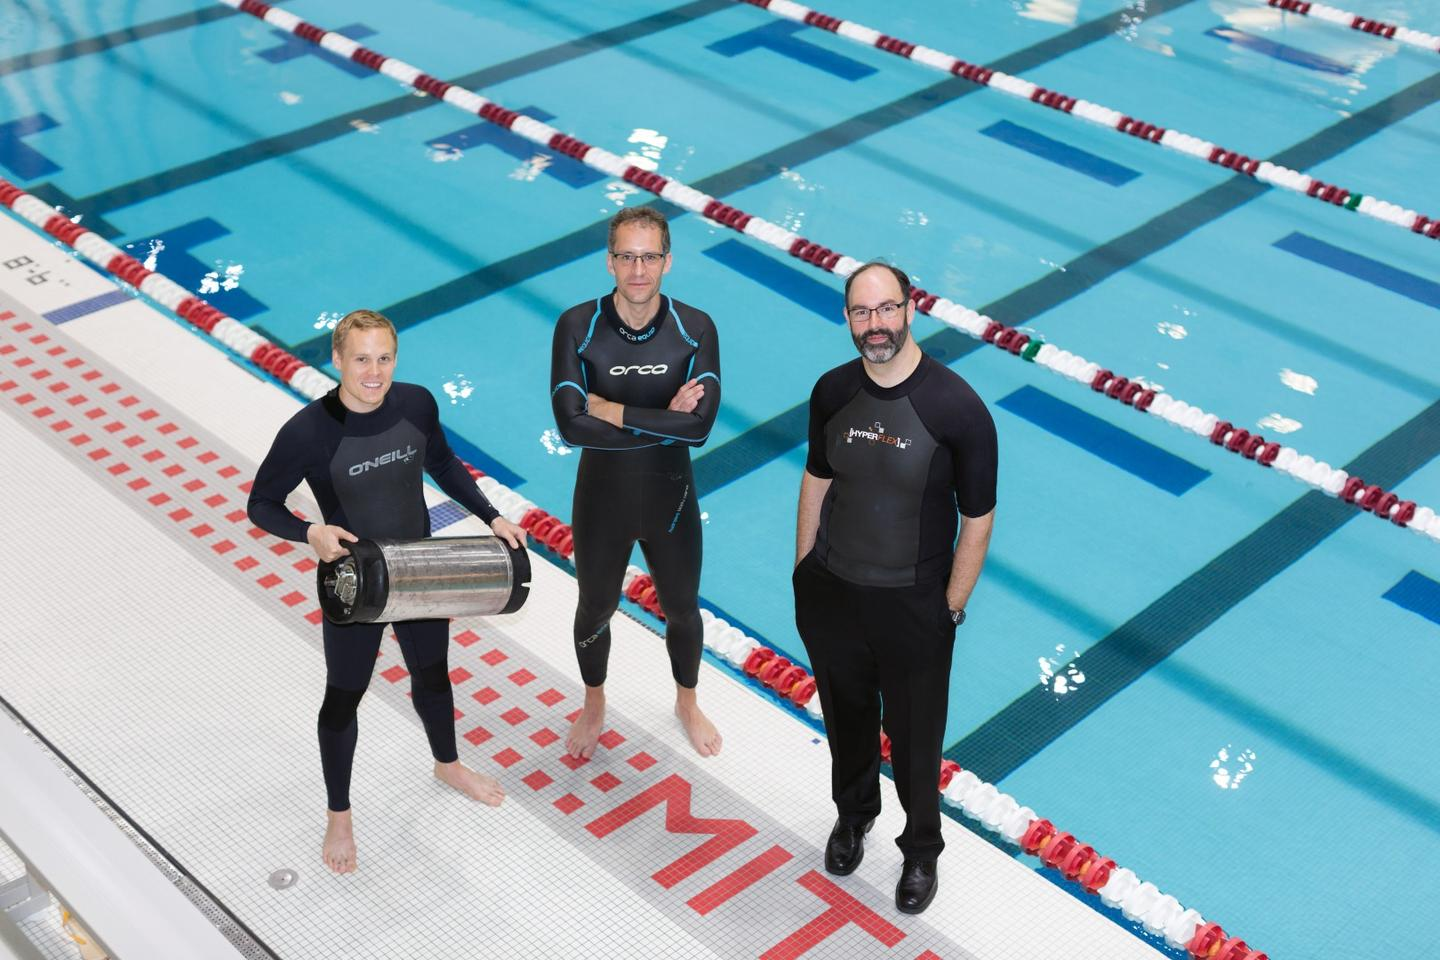 From left, graduate student Anton Cottrill, Professor Jacopo Buongiorno and Professor Michael Strano try out their neoprene wetsuits at a pool at MIT's athletic center